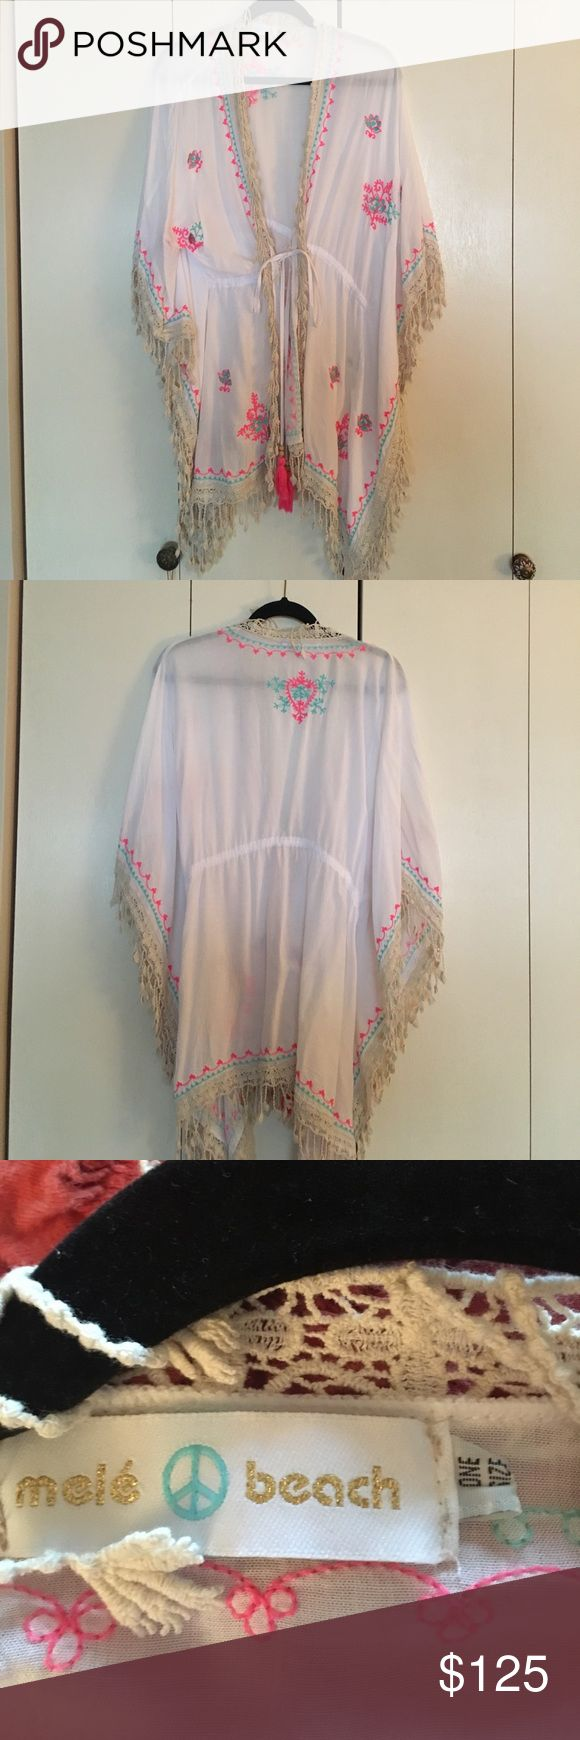 Mele beach dolman sleeve beach cover One size fits all embroidered and tassel Domin sleeve beach cover-up can also be worn with a pair of pants and a camisole purchased in the Dominican republic never worn mele beach Tops Tunics